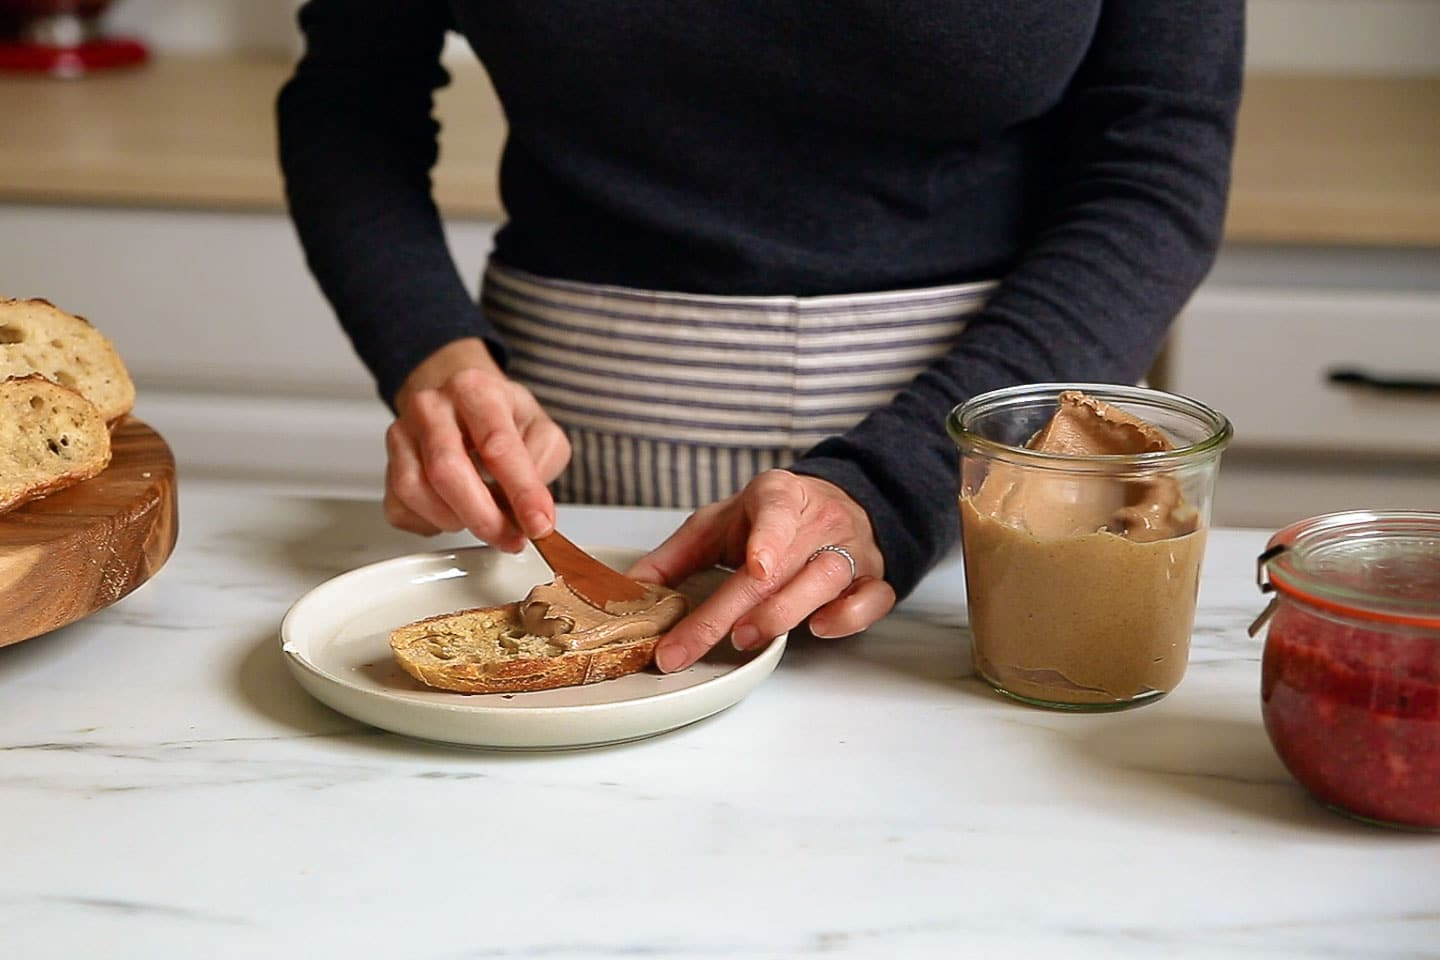 A woman spreading almond butter on a piece of toast.